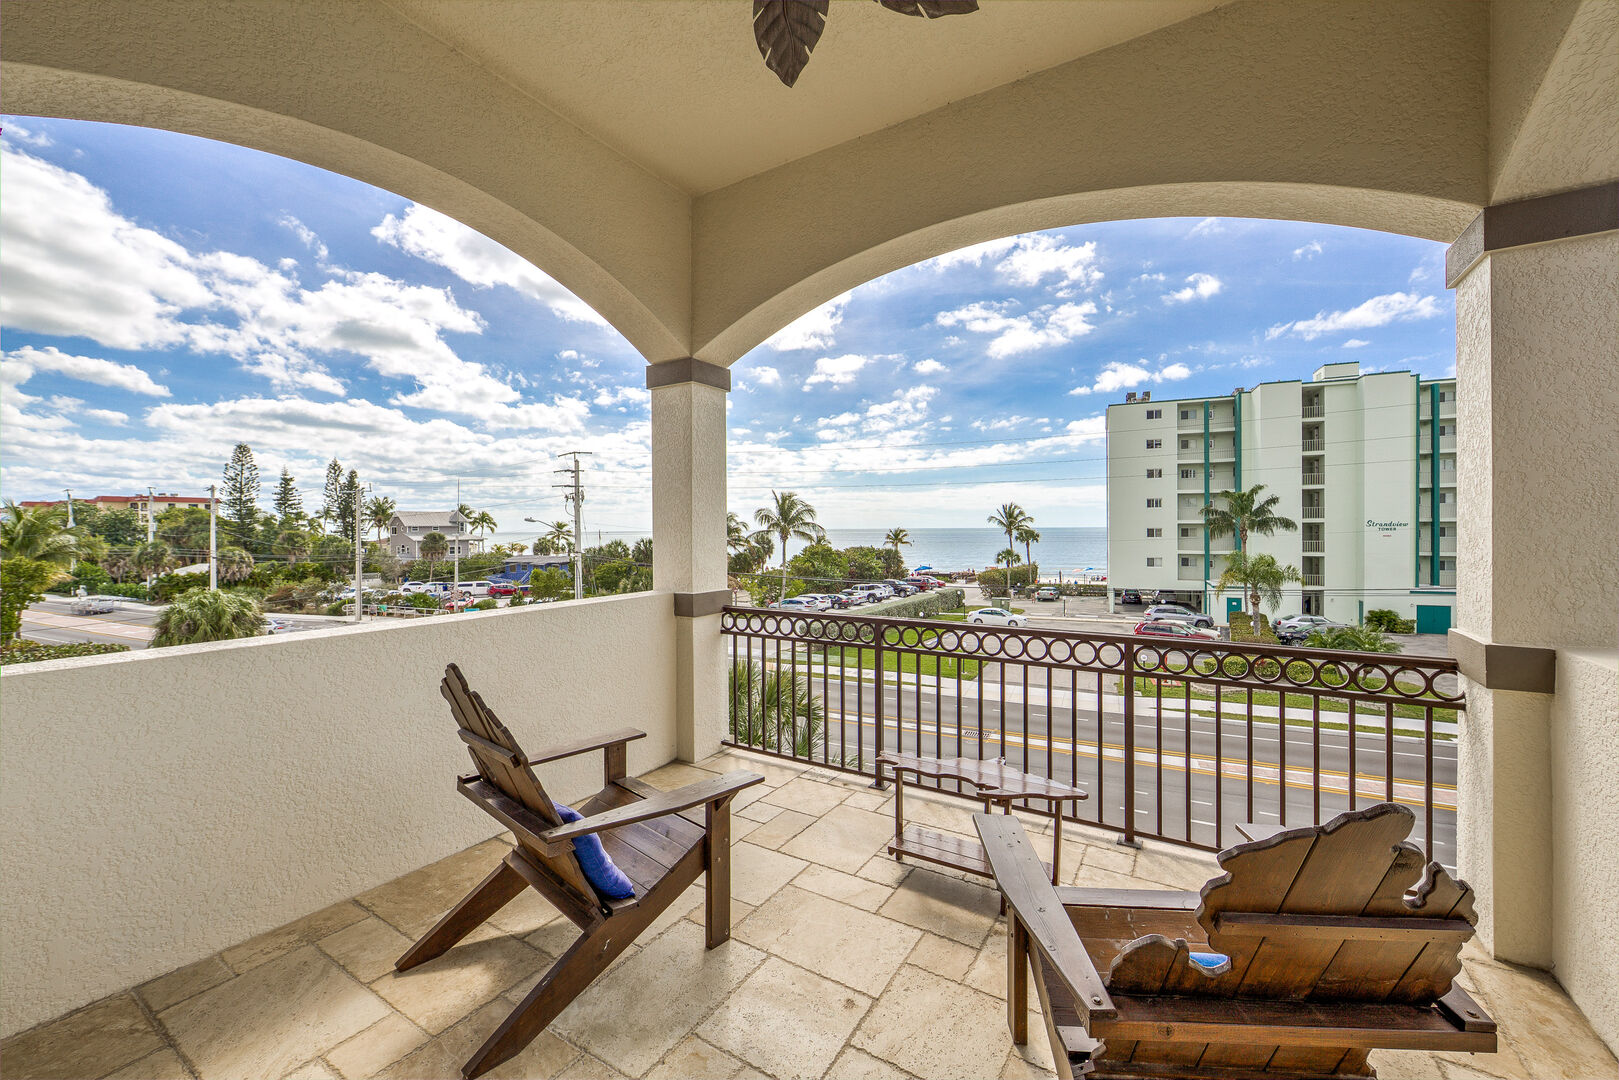 Small Balcony Vacation Home for Rent in Fort Myers Beach